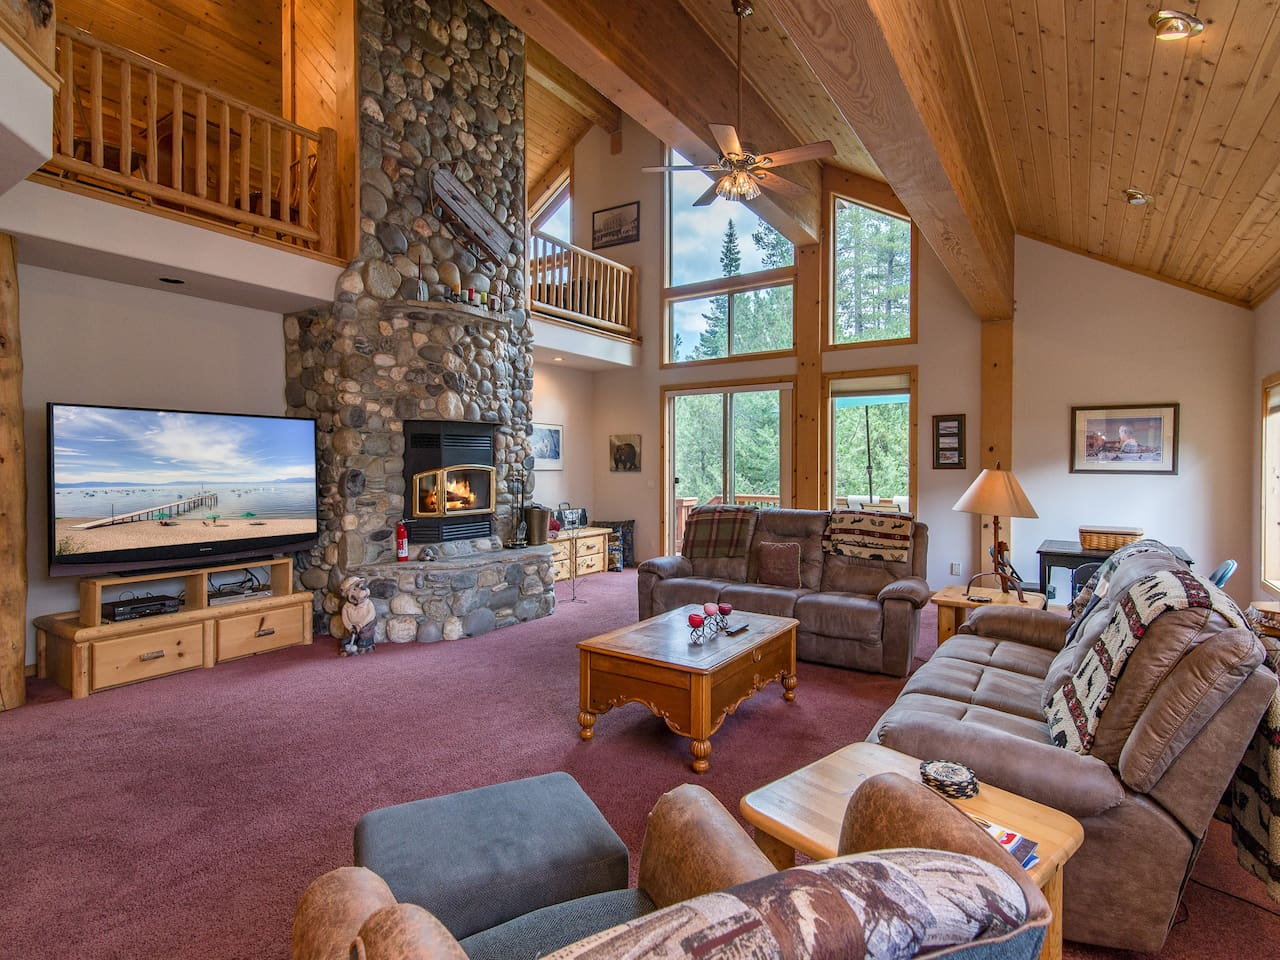 Welcome to Truckee! Your getaway is professionally managed by TurnKey Vacation Rentals.